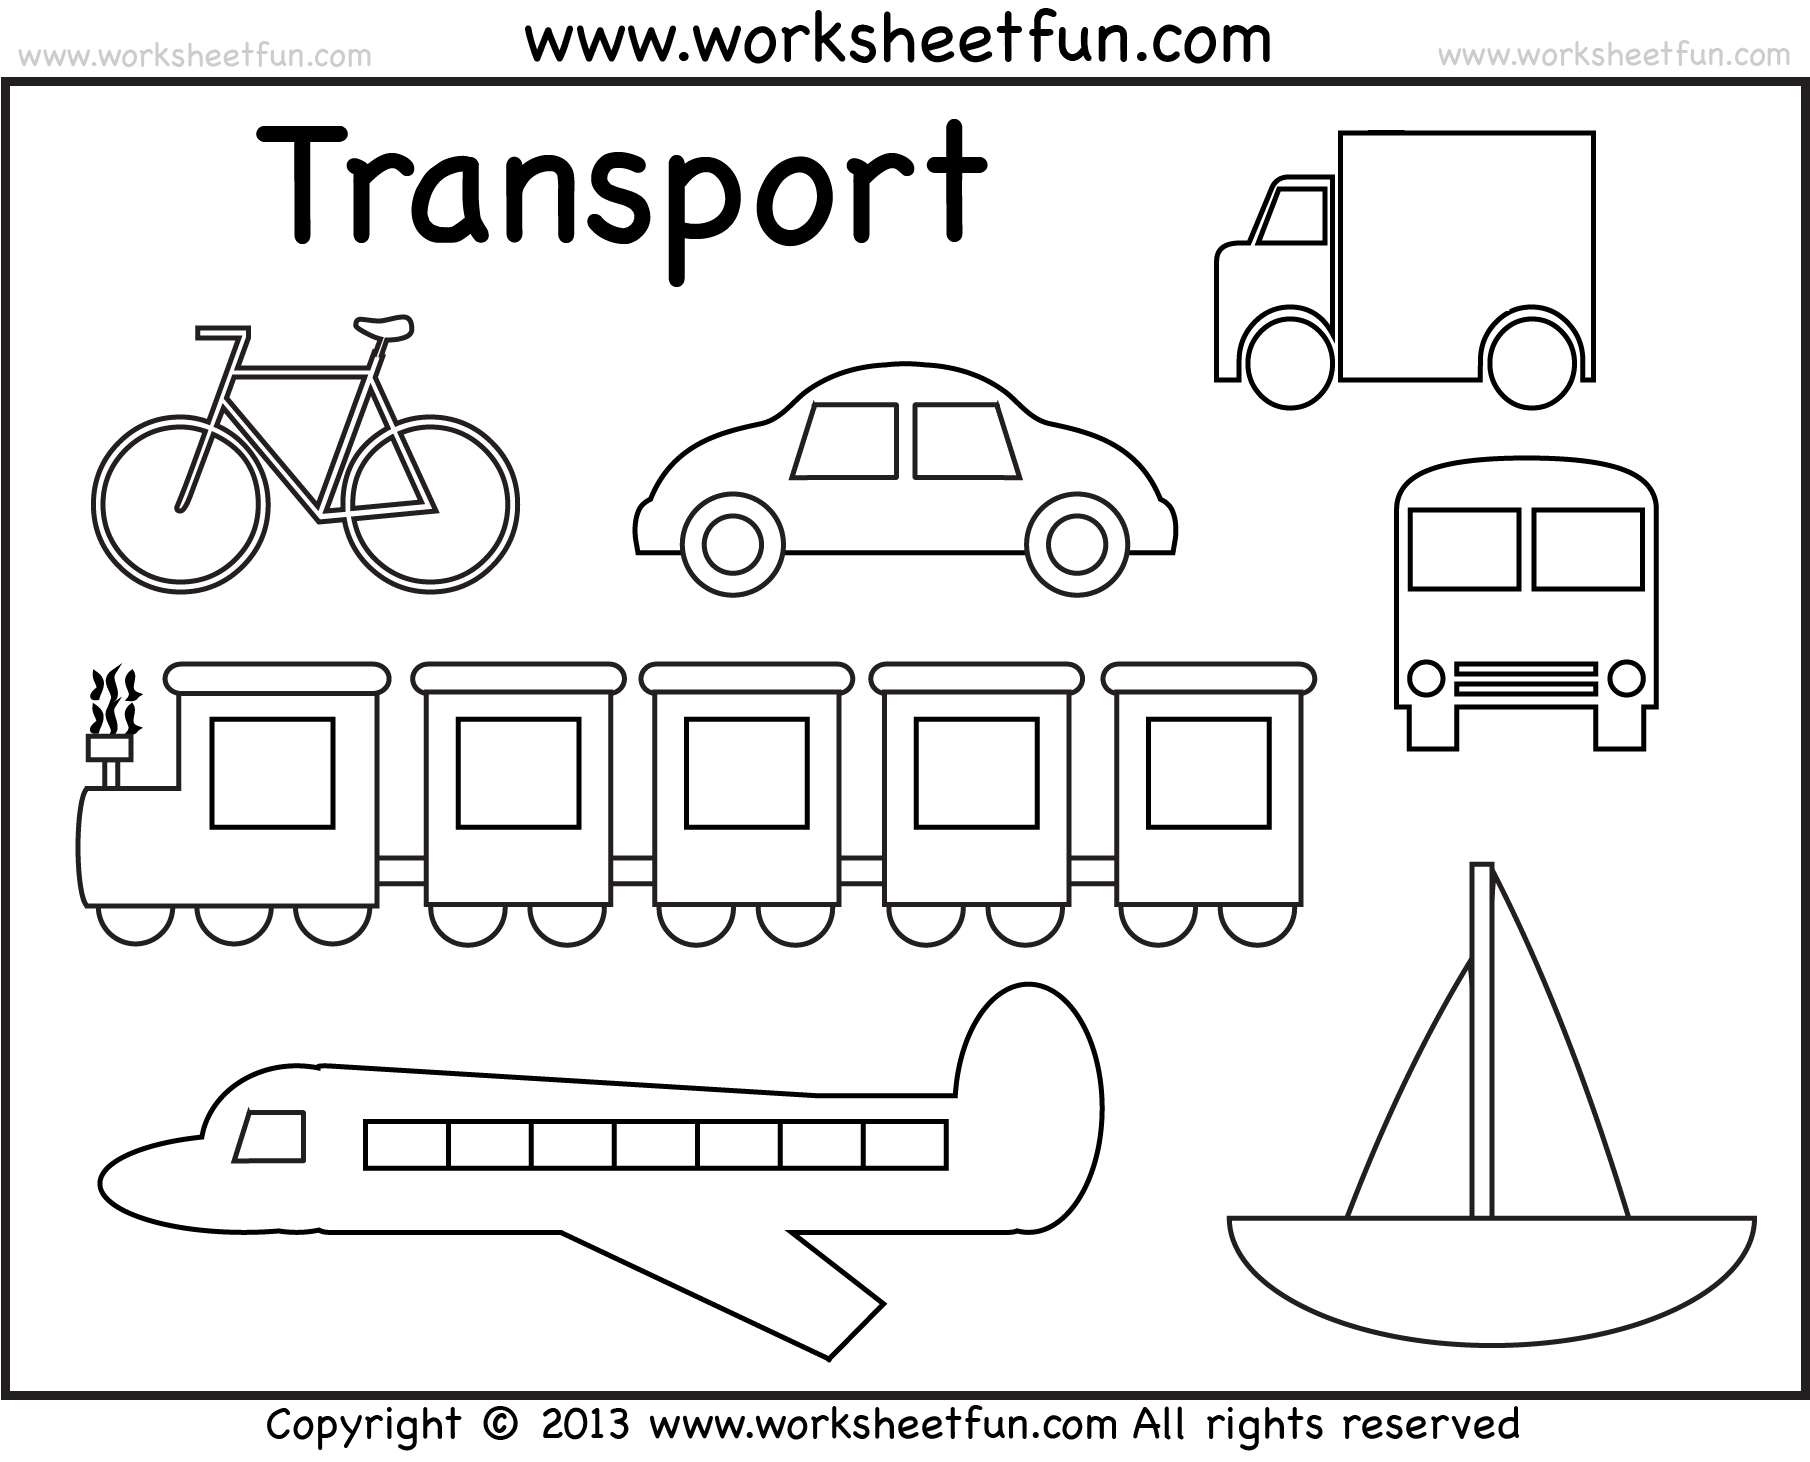 Transportation Water Cycle Diagram, Transportation, Free